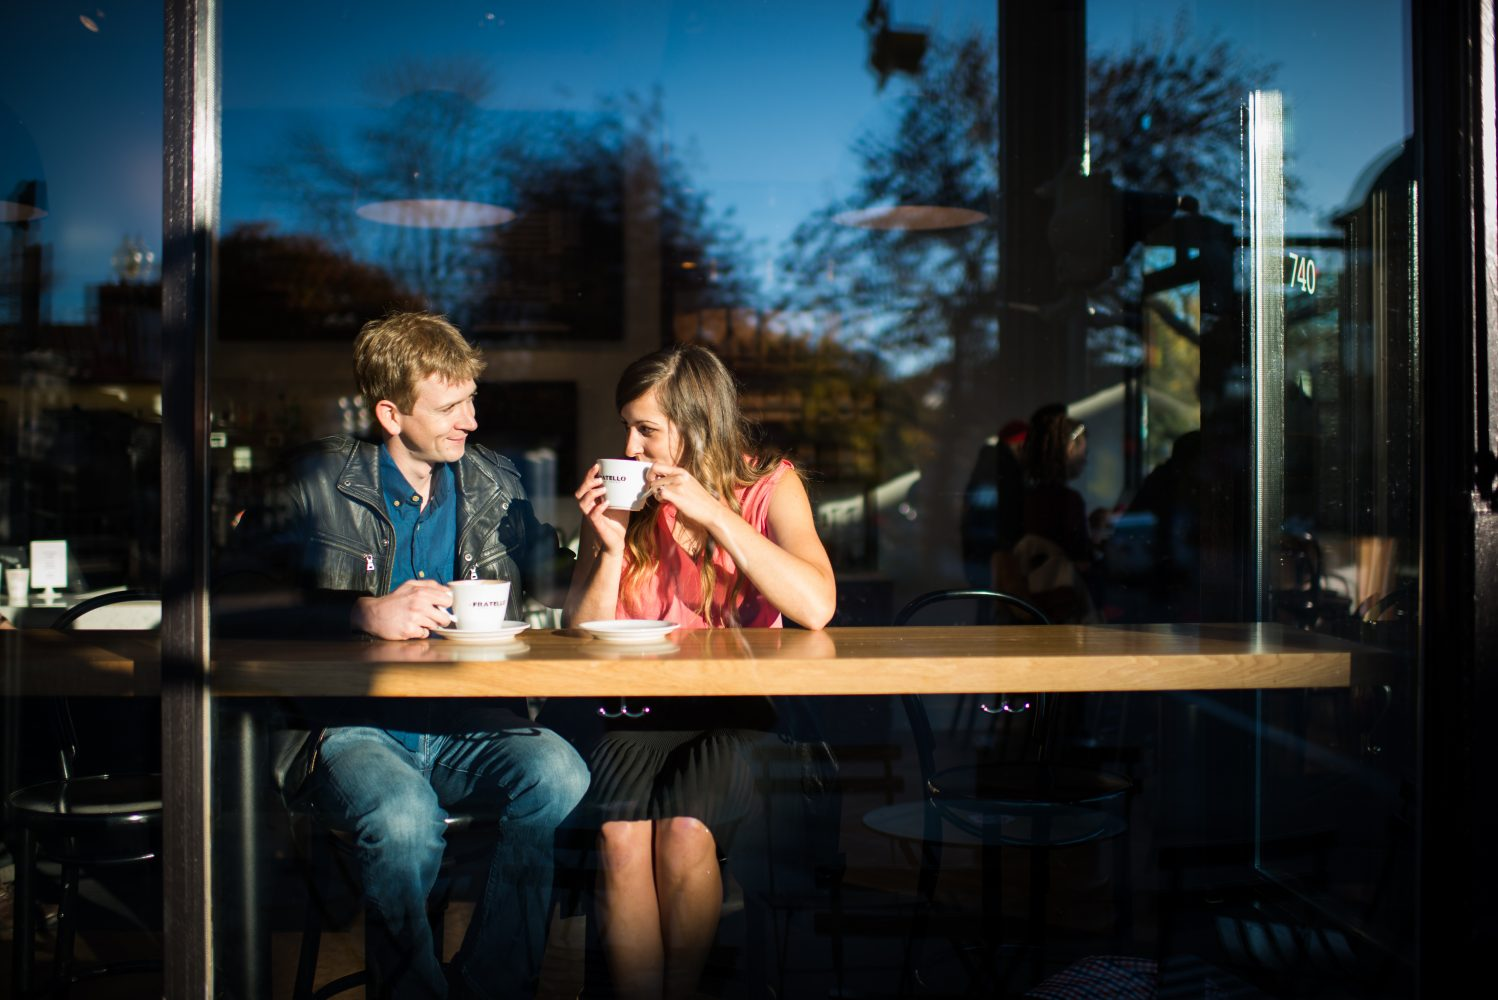 Downtown Coffee shope engagement photographs in Calgary Alberta | 3Haus Photographics